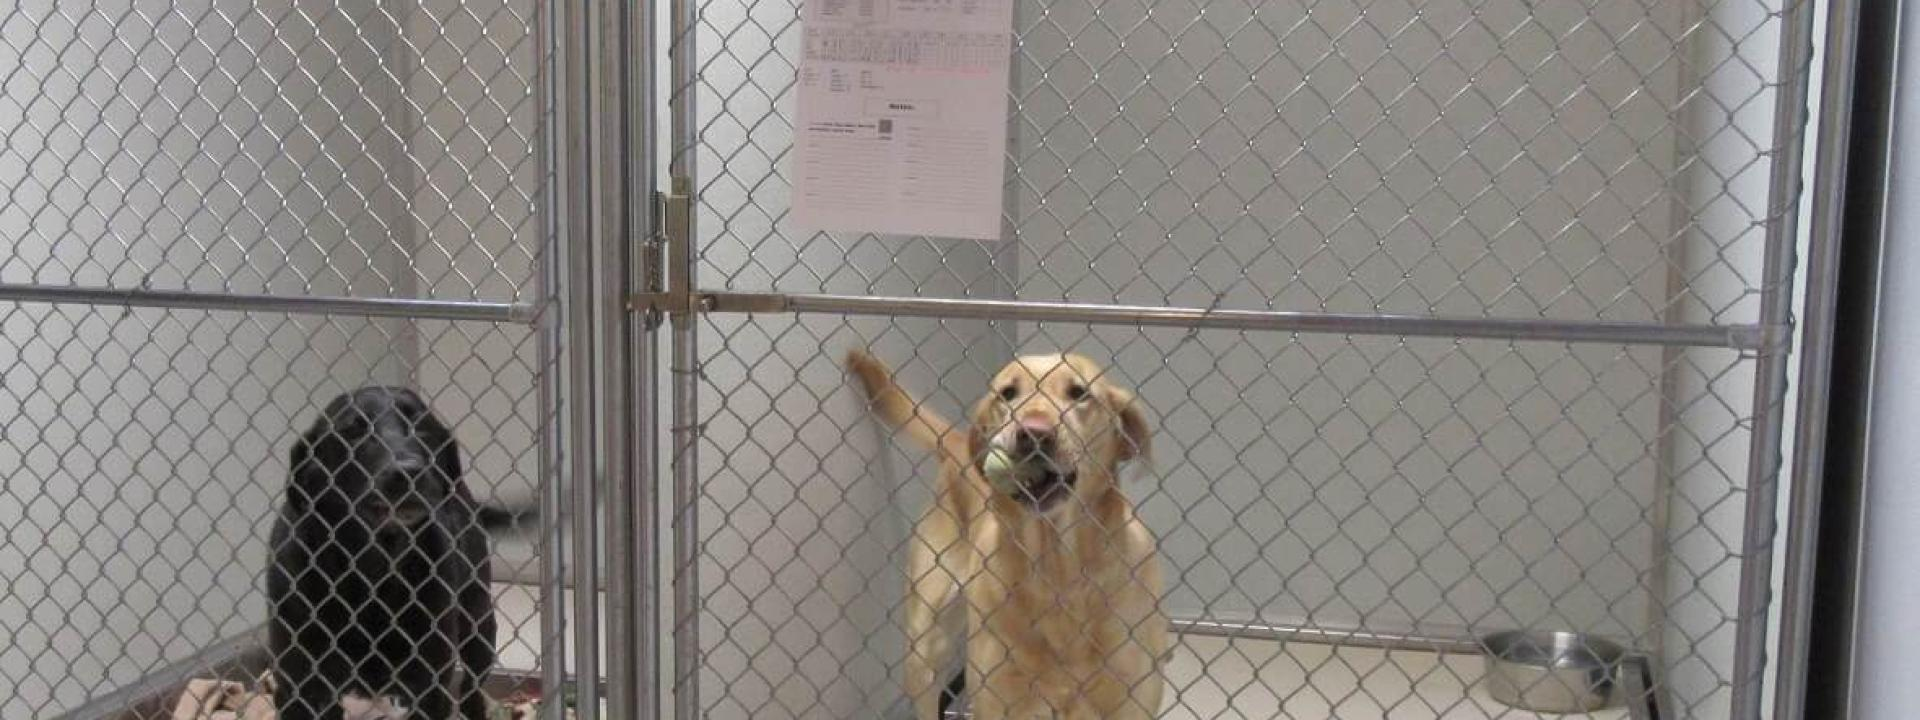 Two labs in kennel